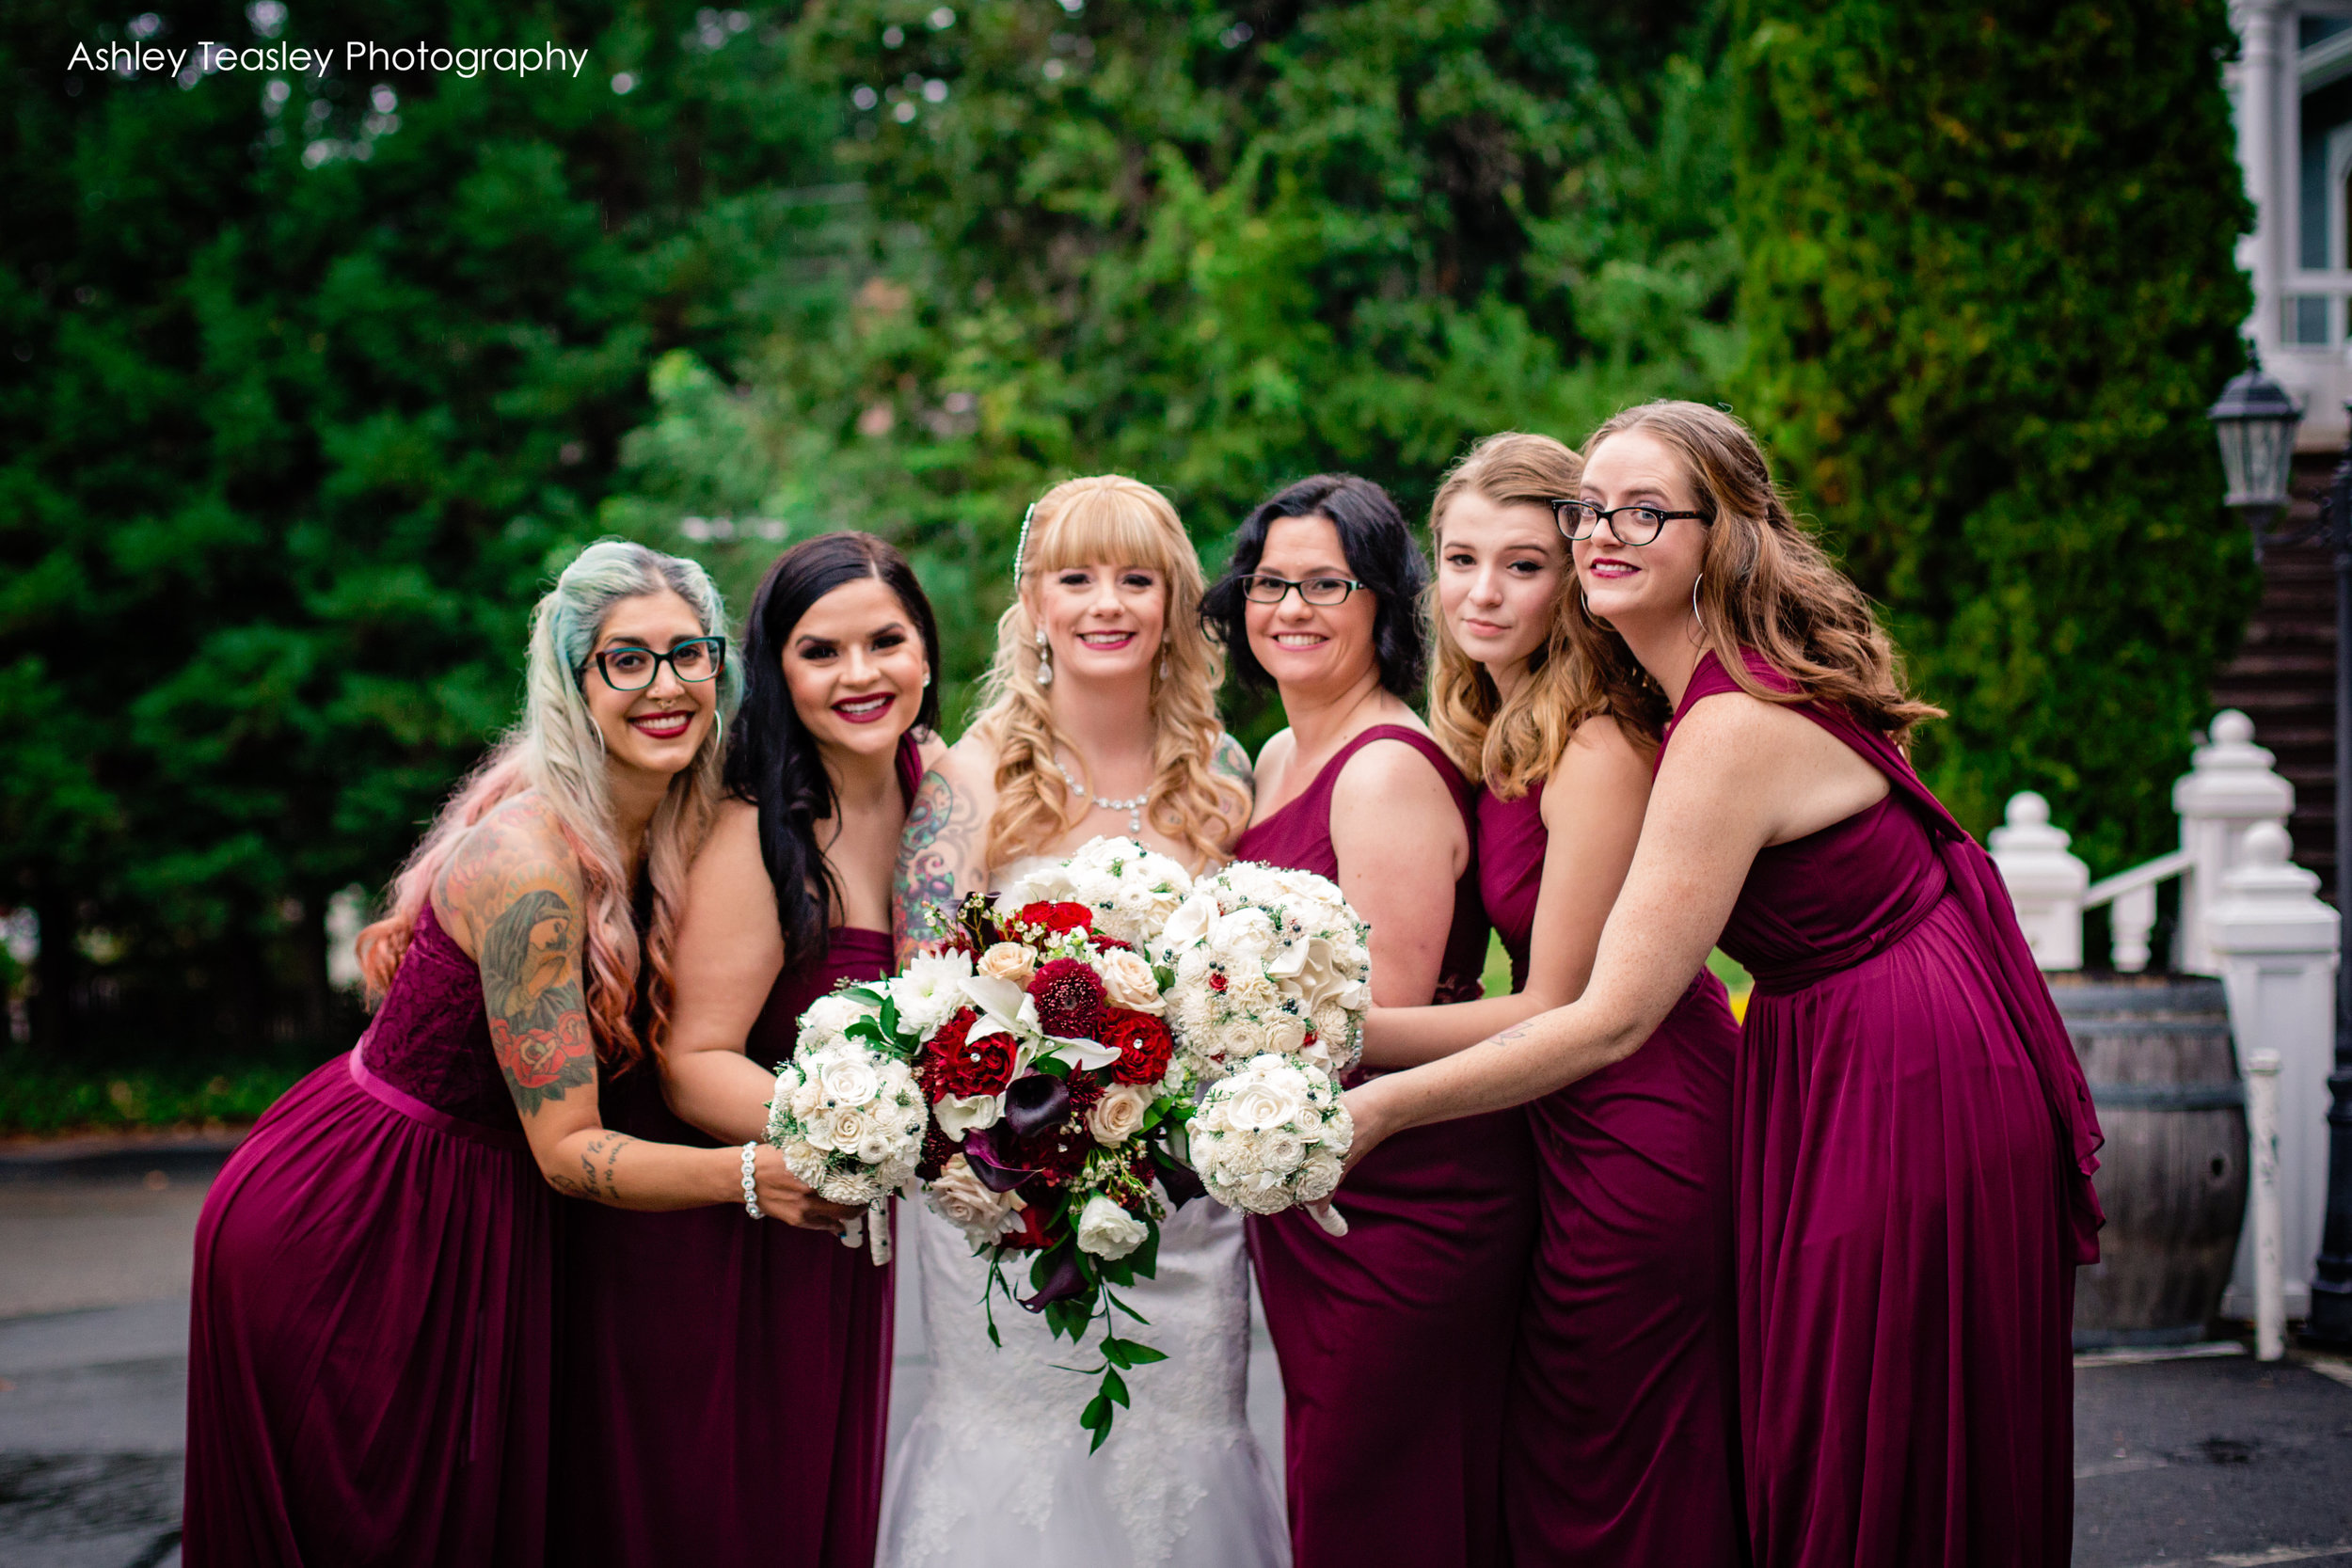 Marlaina & Kristopher - The Sequoia House Wedgewood - Sacramento Wedding Photographer - Ashley Teasley Photography--25.JPG